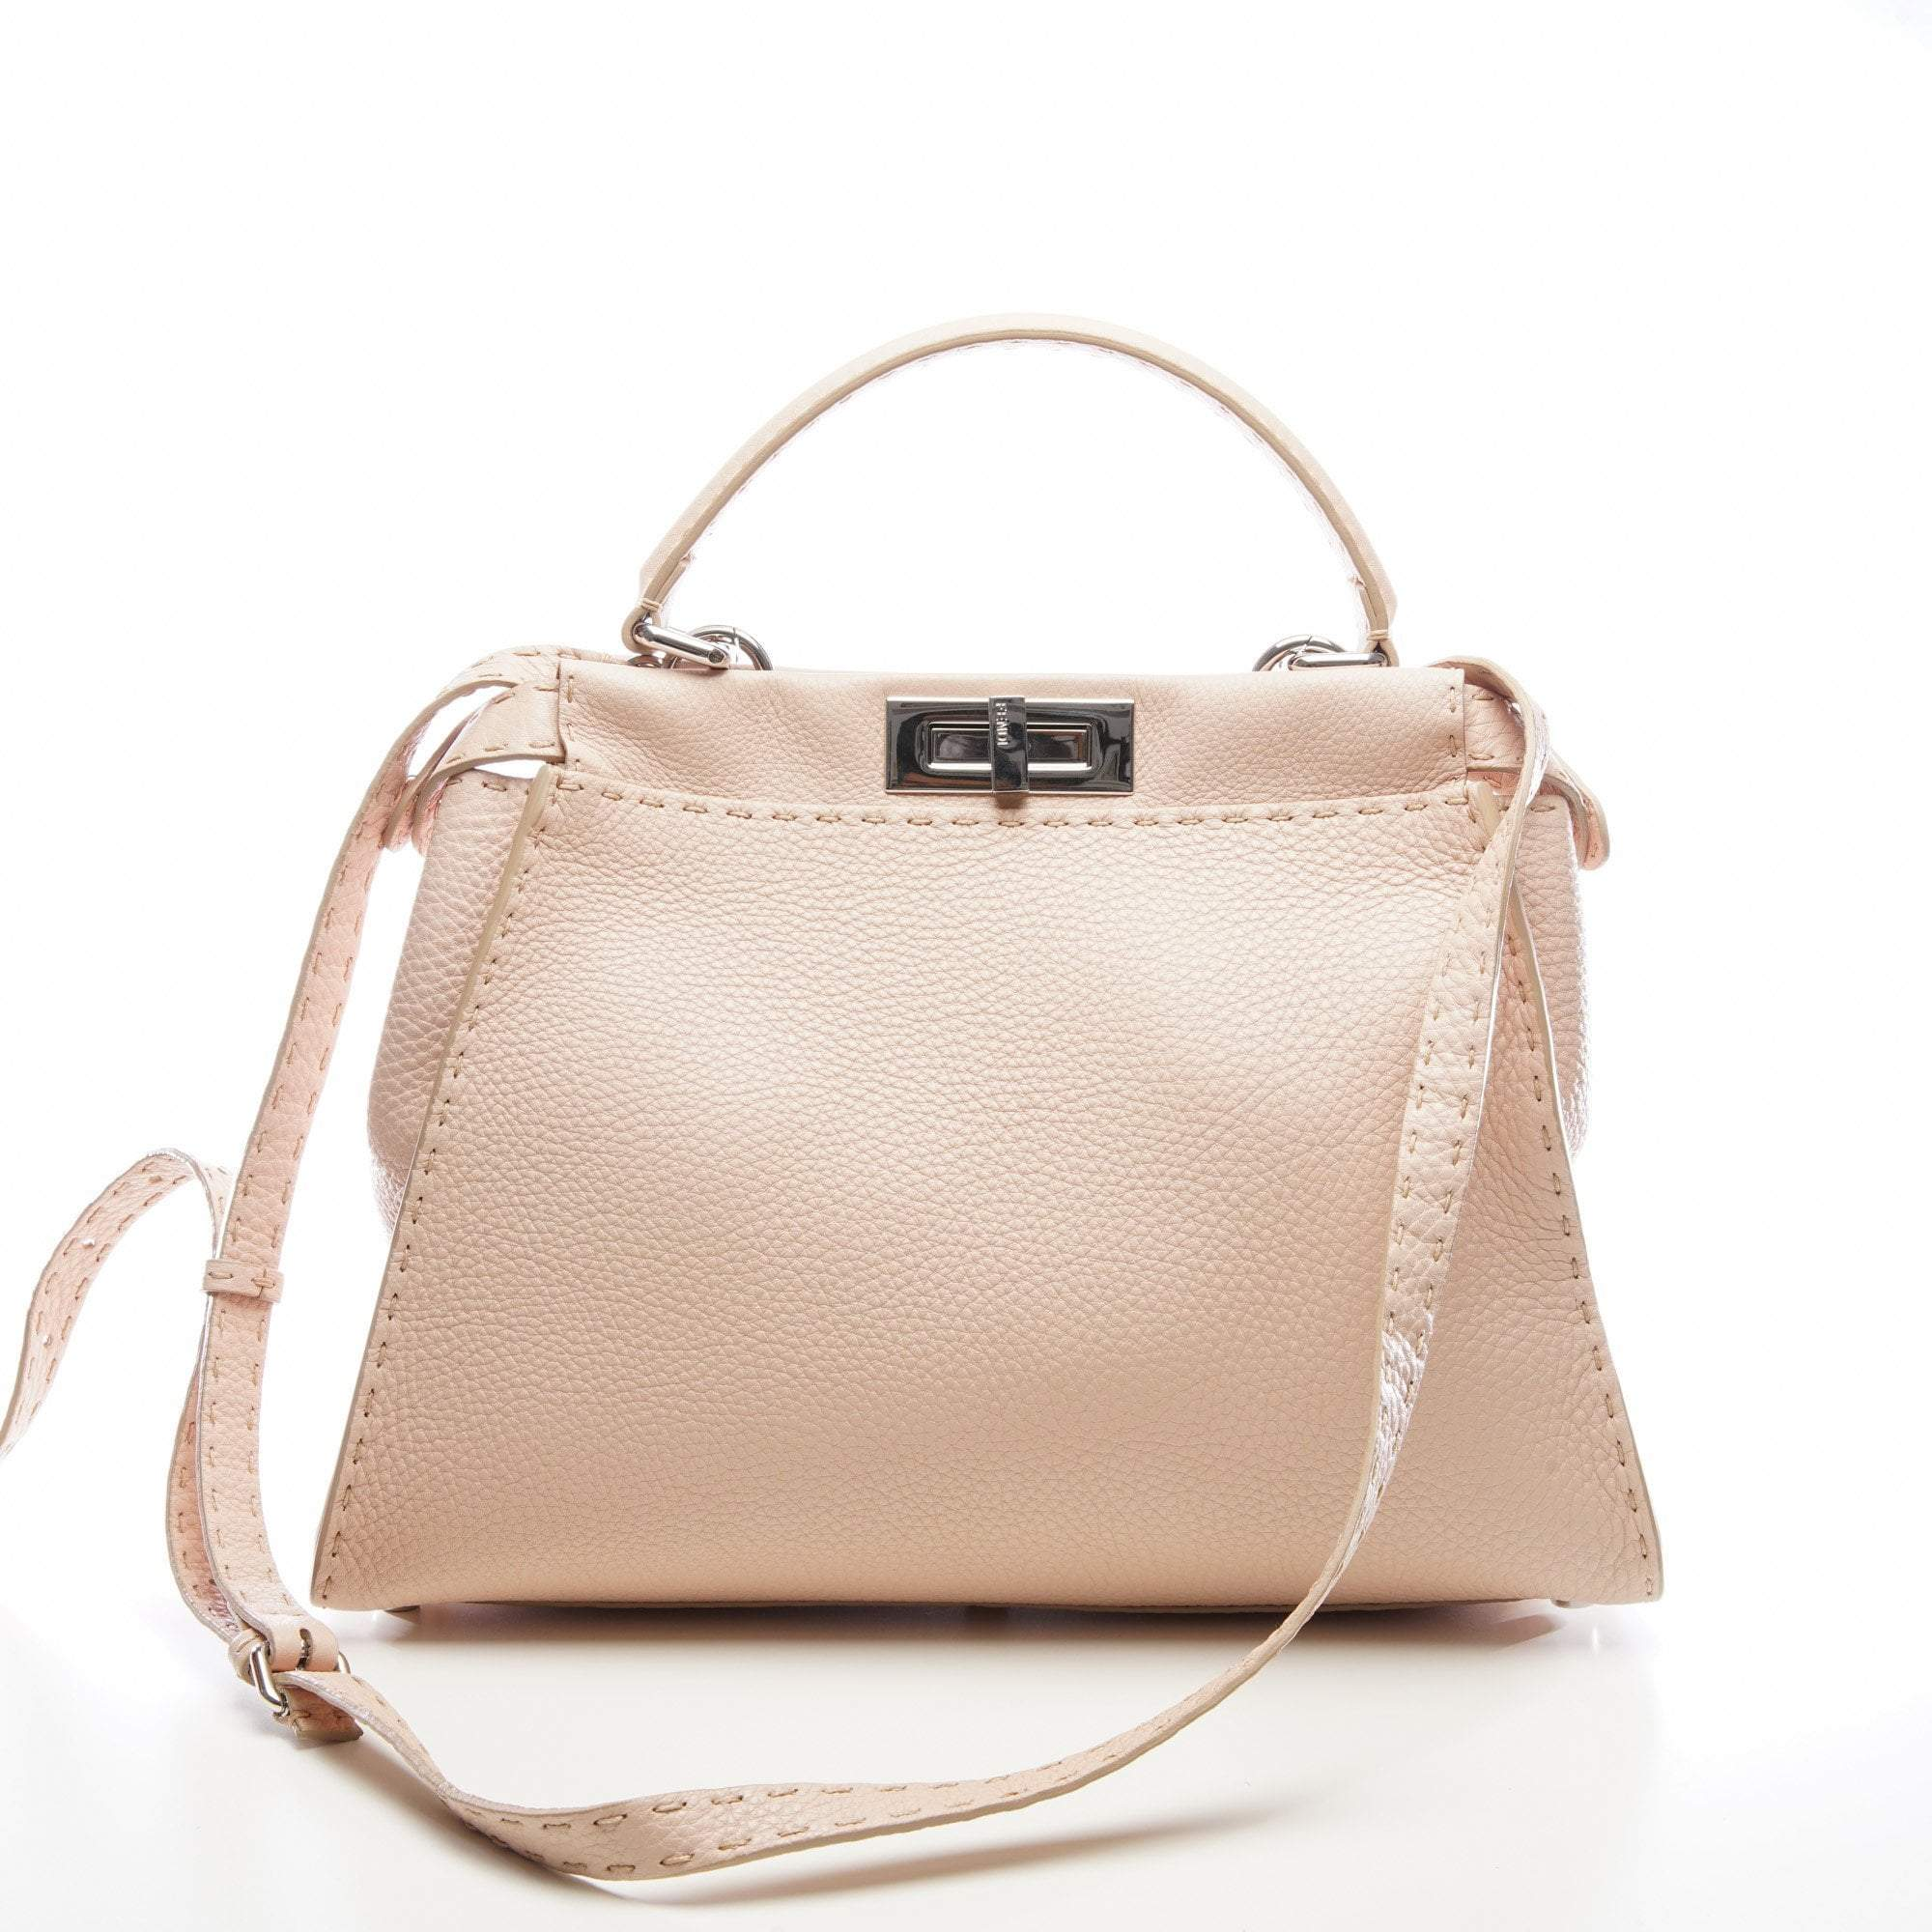 Fendi Pastel Pink Peekaboo Leather Tote